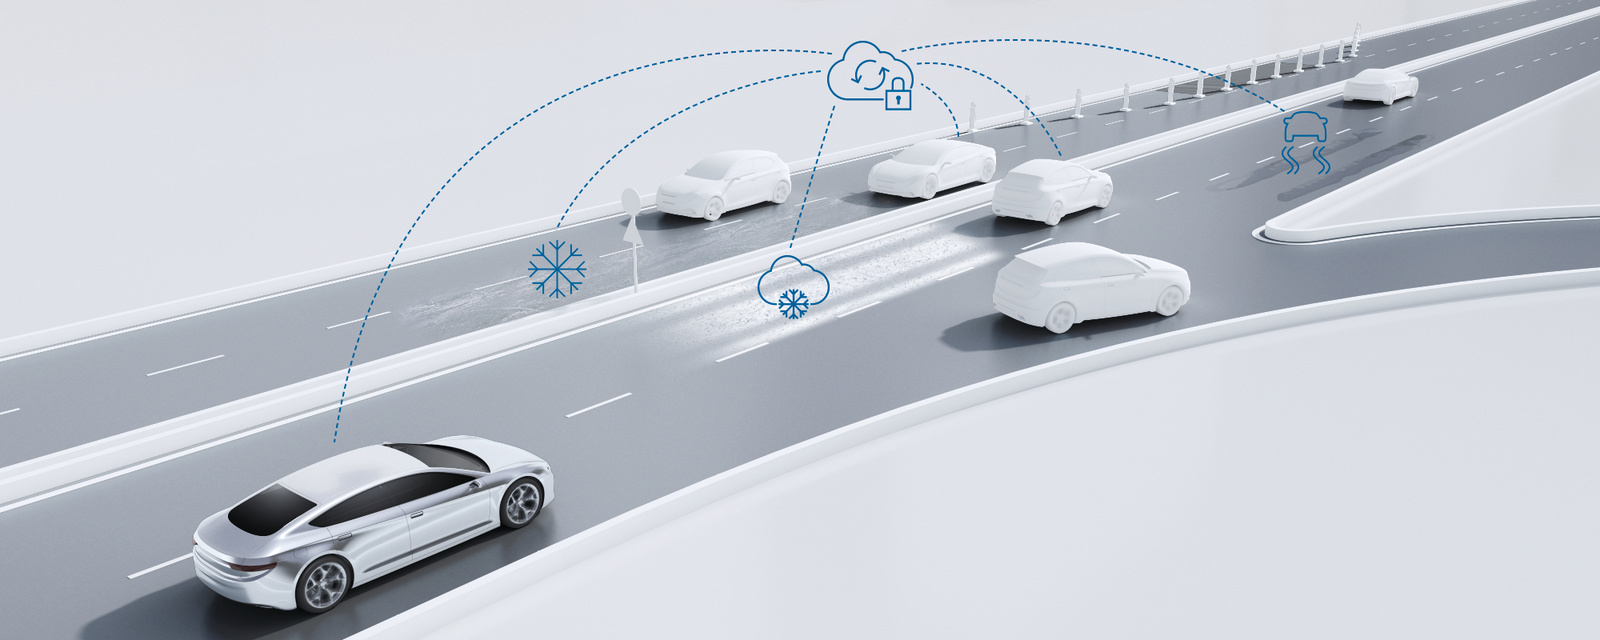 Predictive road-condition services from Bosch